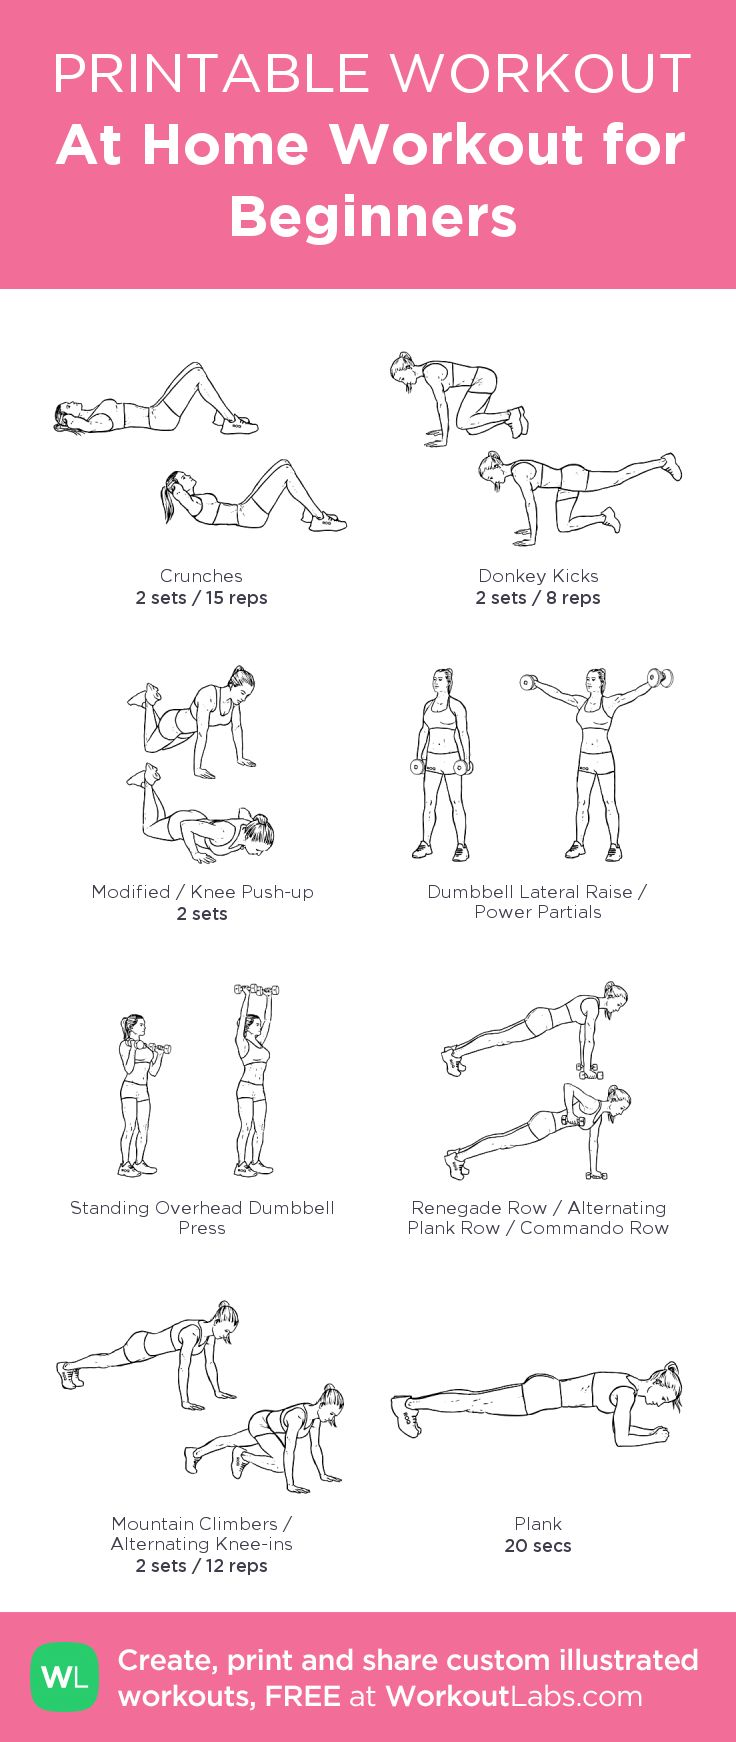 At Home Workout for Beginners:my visual workout created at WorkoutLabs.com • Click through to customize and download as a FREE PDF! #customworkout